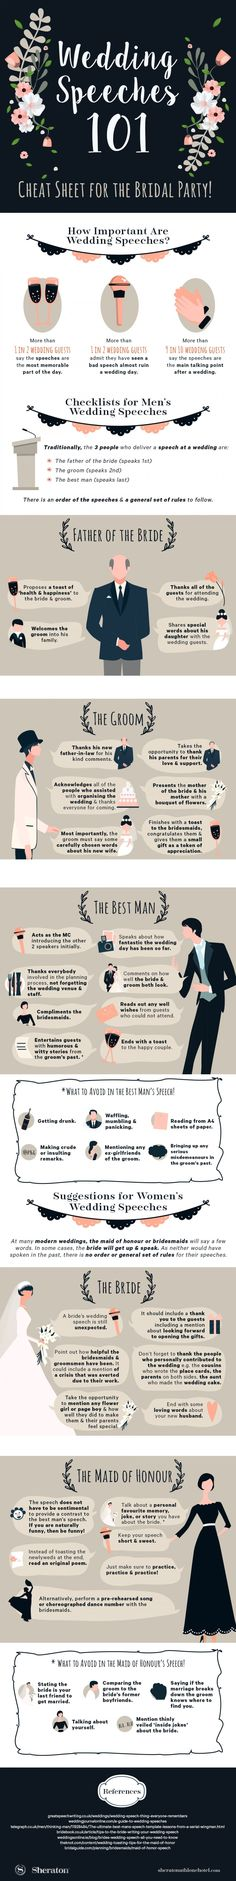 This infographic by Sheraton Athlone Hotel provide tips on how to write the perfect wedding speech, whether you're one half of the marrying couple, the best man, maid of honour or father of the bride. The best wedding speeches are light-hearted but still heartfelt, an ideal mixture of good spirits and unmistakable affection towards the bride and groom. #weddinginfographic